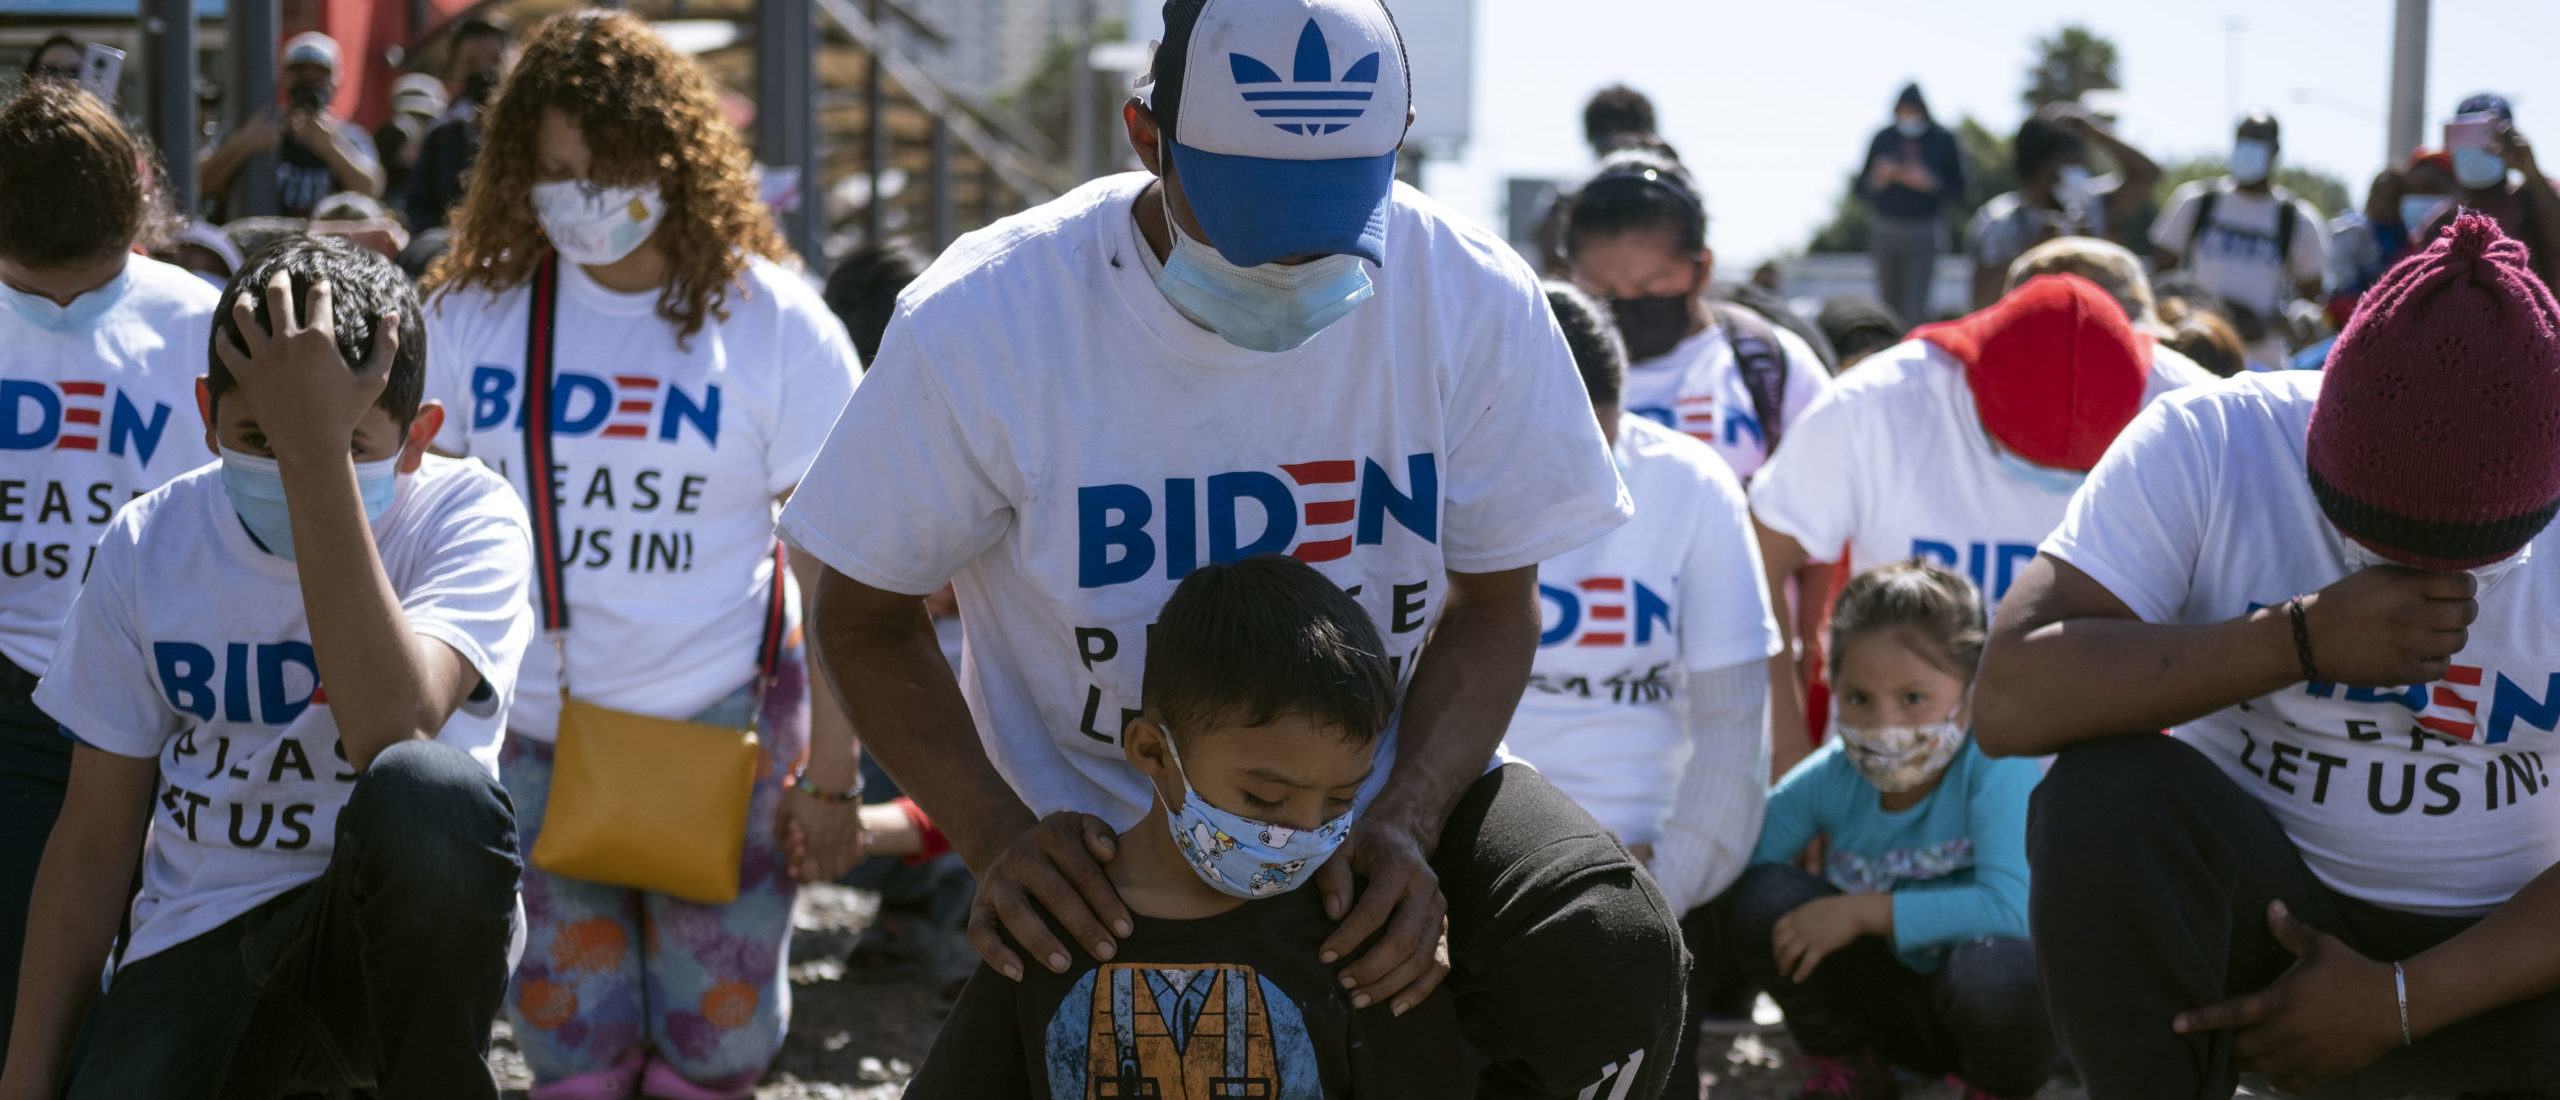 TOPSHOT - Yadiel Garcia and his father Fabricio, from Honduras, kneel as they pray during a migrant demonstration demanding clearer United States migration policies, at San Ysidro crossing port in Tijuana, Baja California state, Mexico on March 2, 2021. - Thousands of migrants out of the Migrant Protection Protocol (MPP) program are stranded along the US-Mexico border without knowing when or how they will be able to start their migratory process with US authorities. (Photo by Guillermo Arias / AFP) (Photo by GUILLERMO ARIAS/AFP via Getty Images)